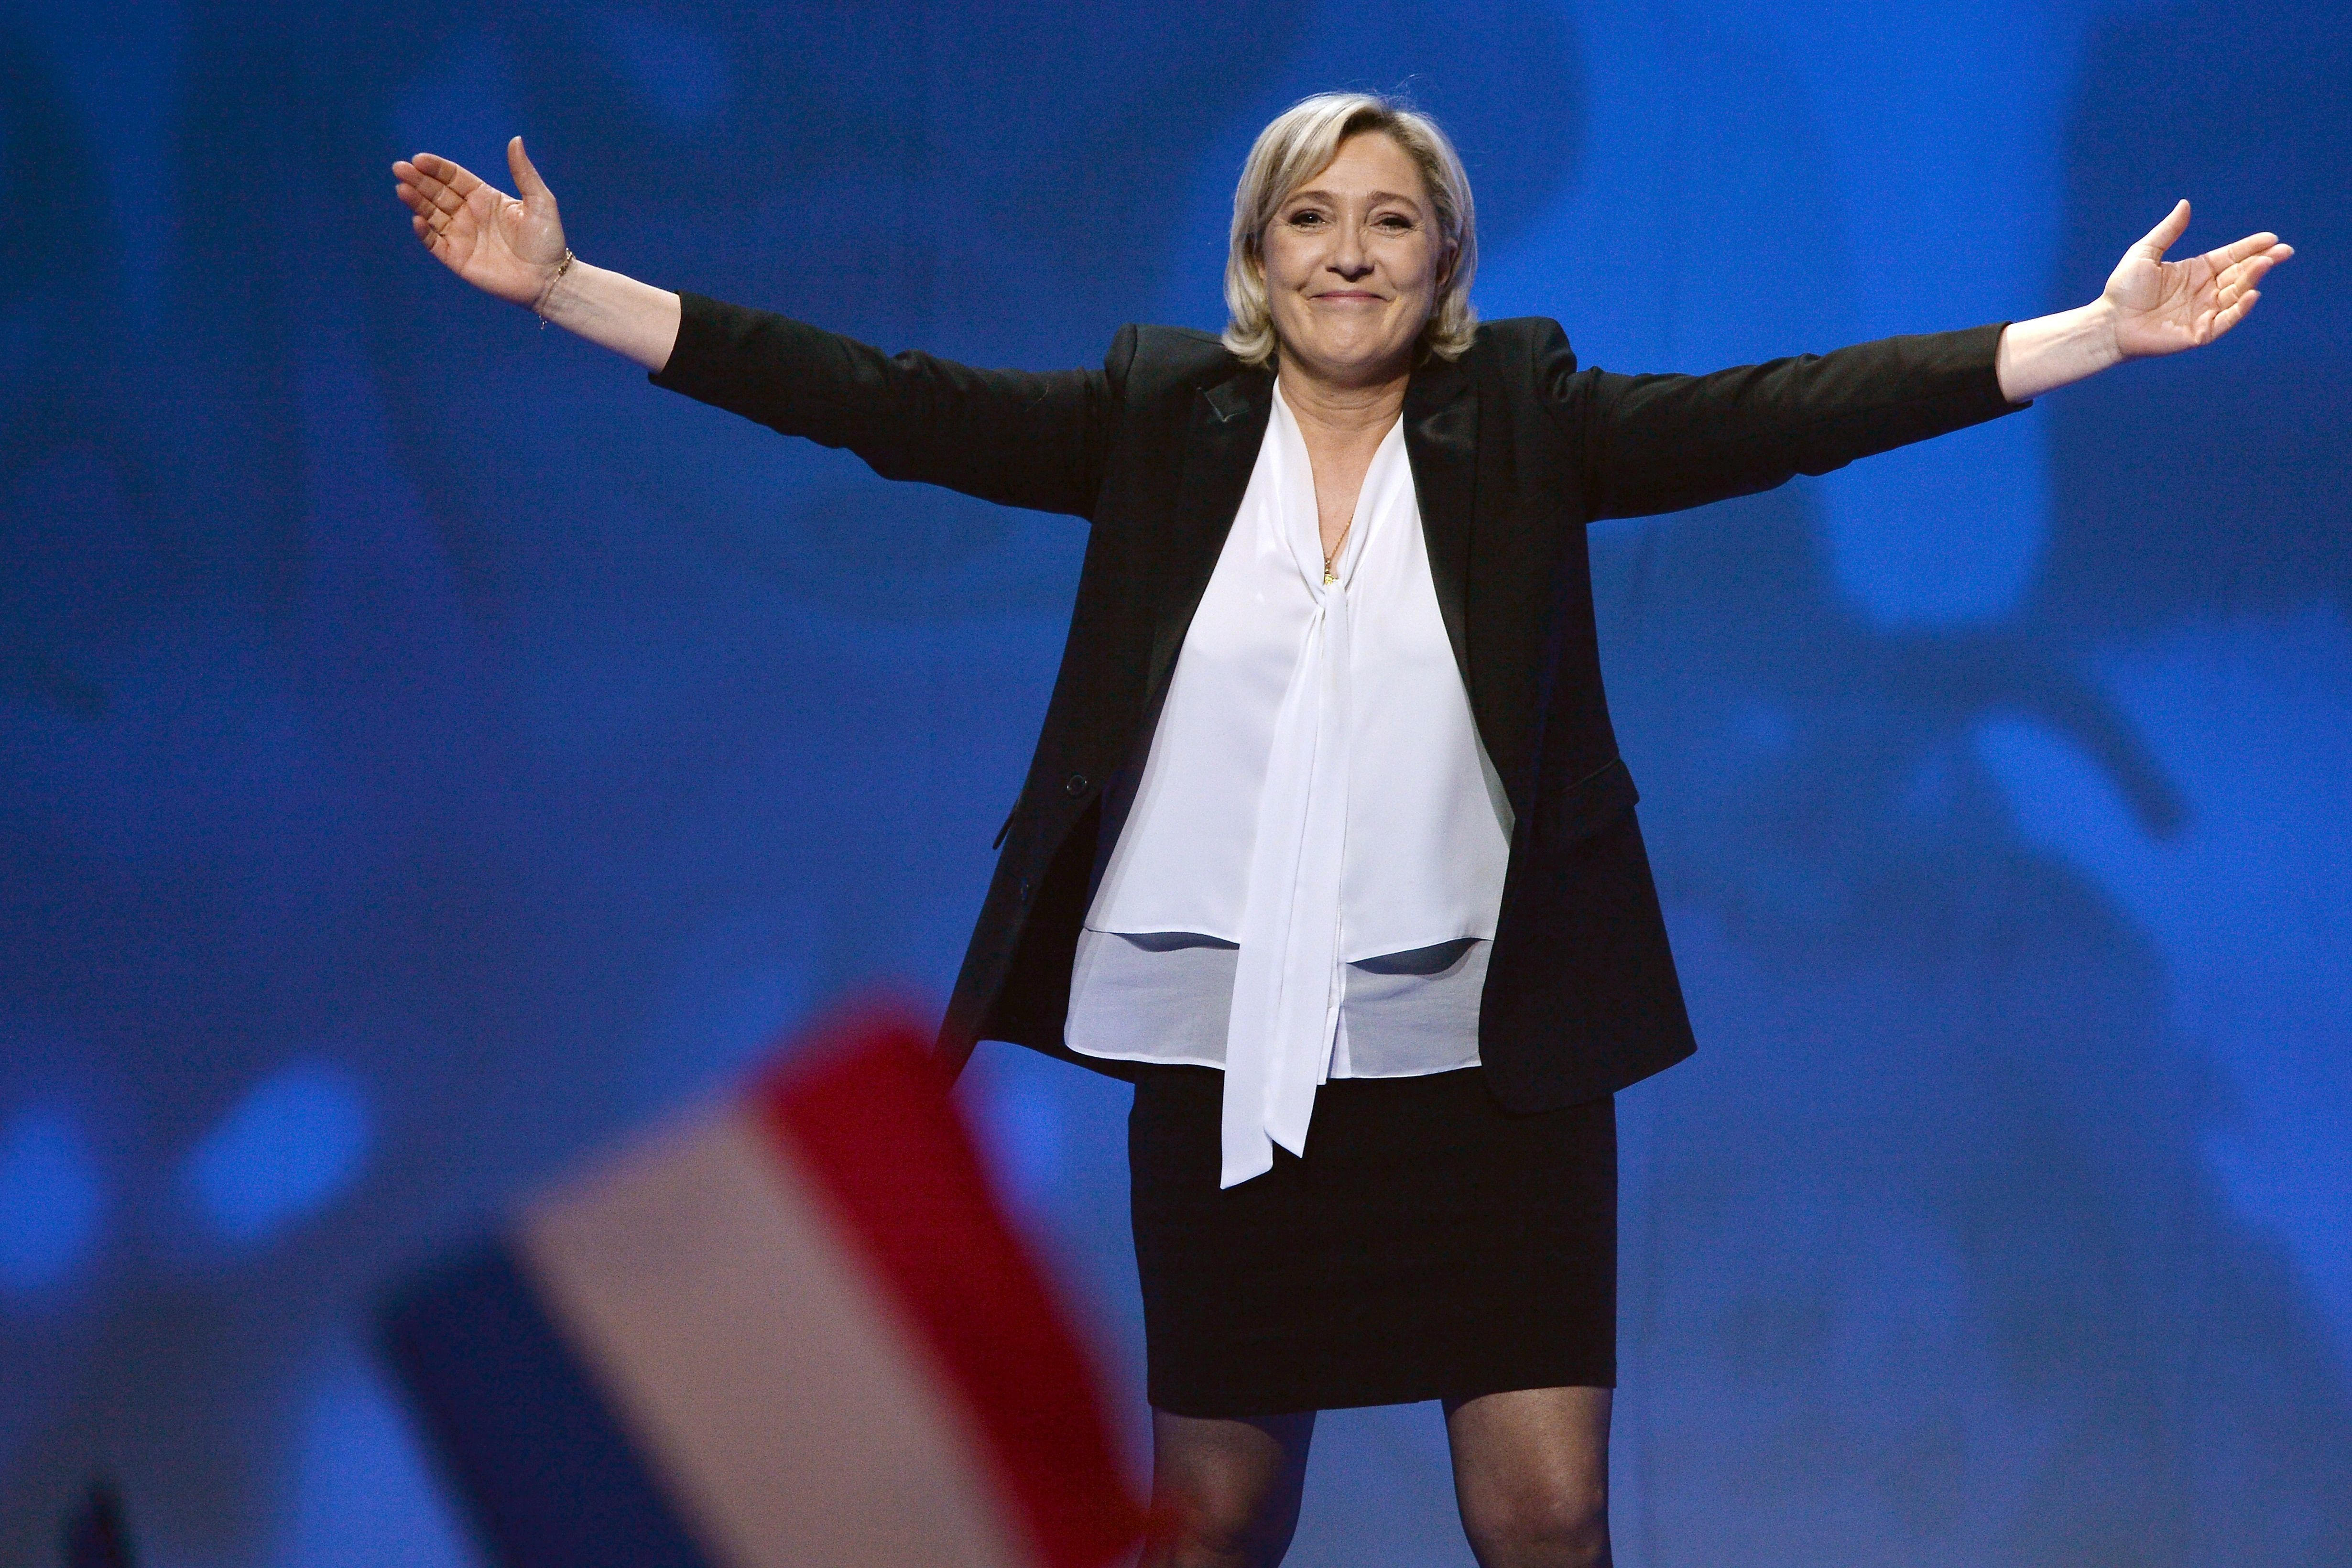 TOPSHOT - French far-right Front National (FN) party candidate for the presidential election Marine Le Pen waves as she arrives to speak on stage during a campaign rally at the Zenith de Nantes venue in Saint-Herblain on February 26, 2017.  / AFP / JEAN-FRANCOIS MONIER        (Photo credit should read JEAN-FRANCOIS MONIER/AFP/Getty Images)